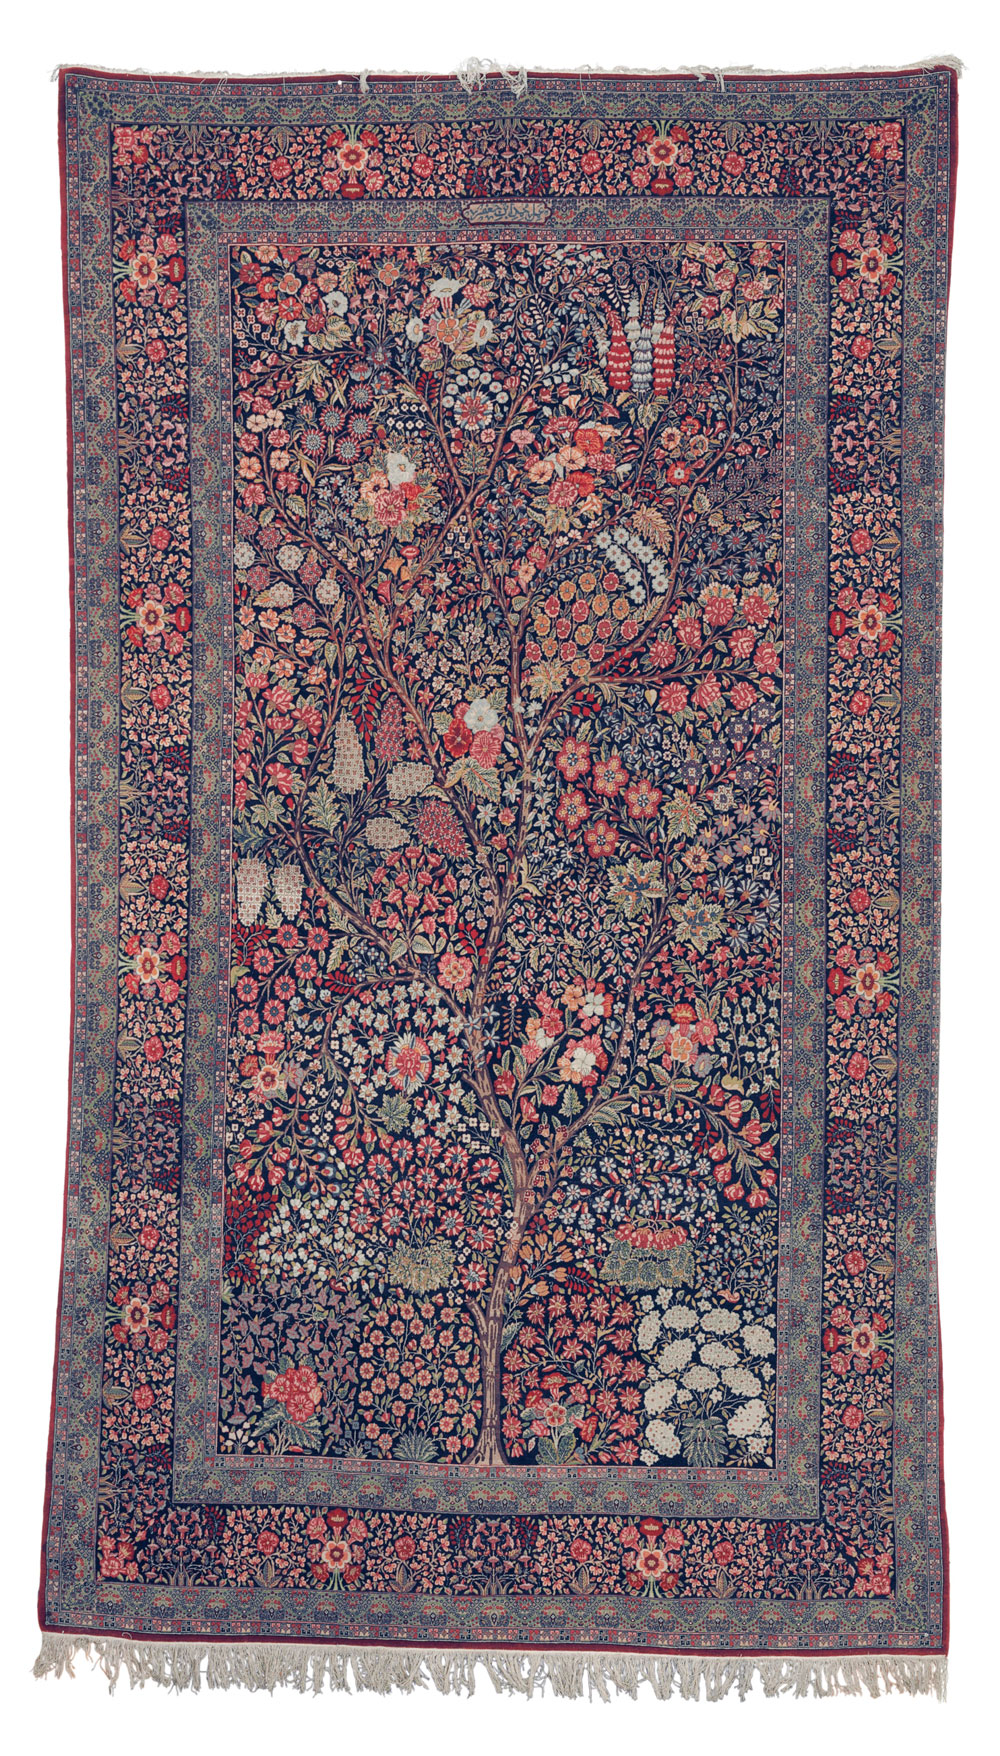 "The Opulent Eye auction, Christie's New York 18 November, Lot 226, Millefleurs rug, Kirman, circa 1900, 292 cm. x 165 cm (9'7' x 5'5""), estimate $20,000 - 30,000"